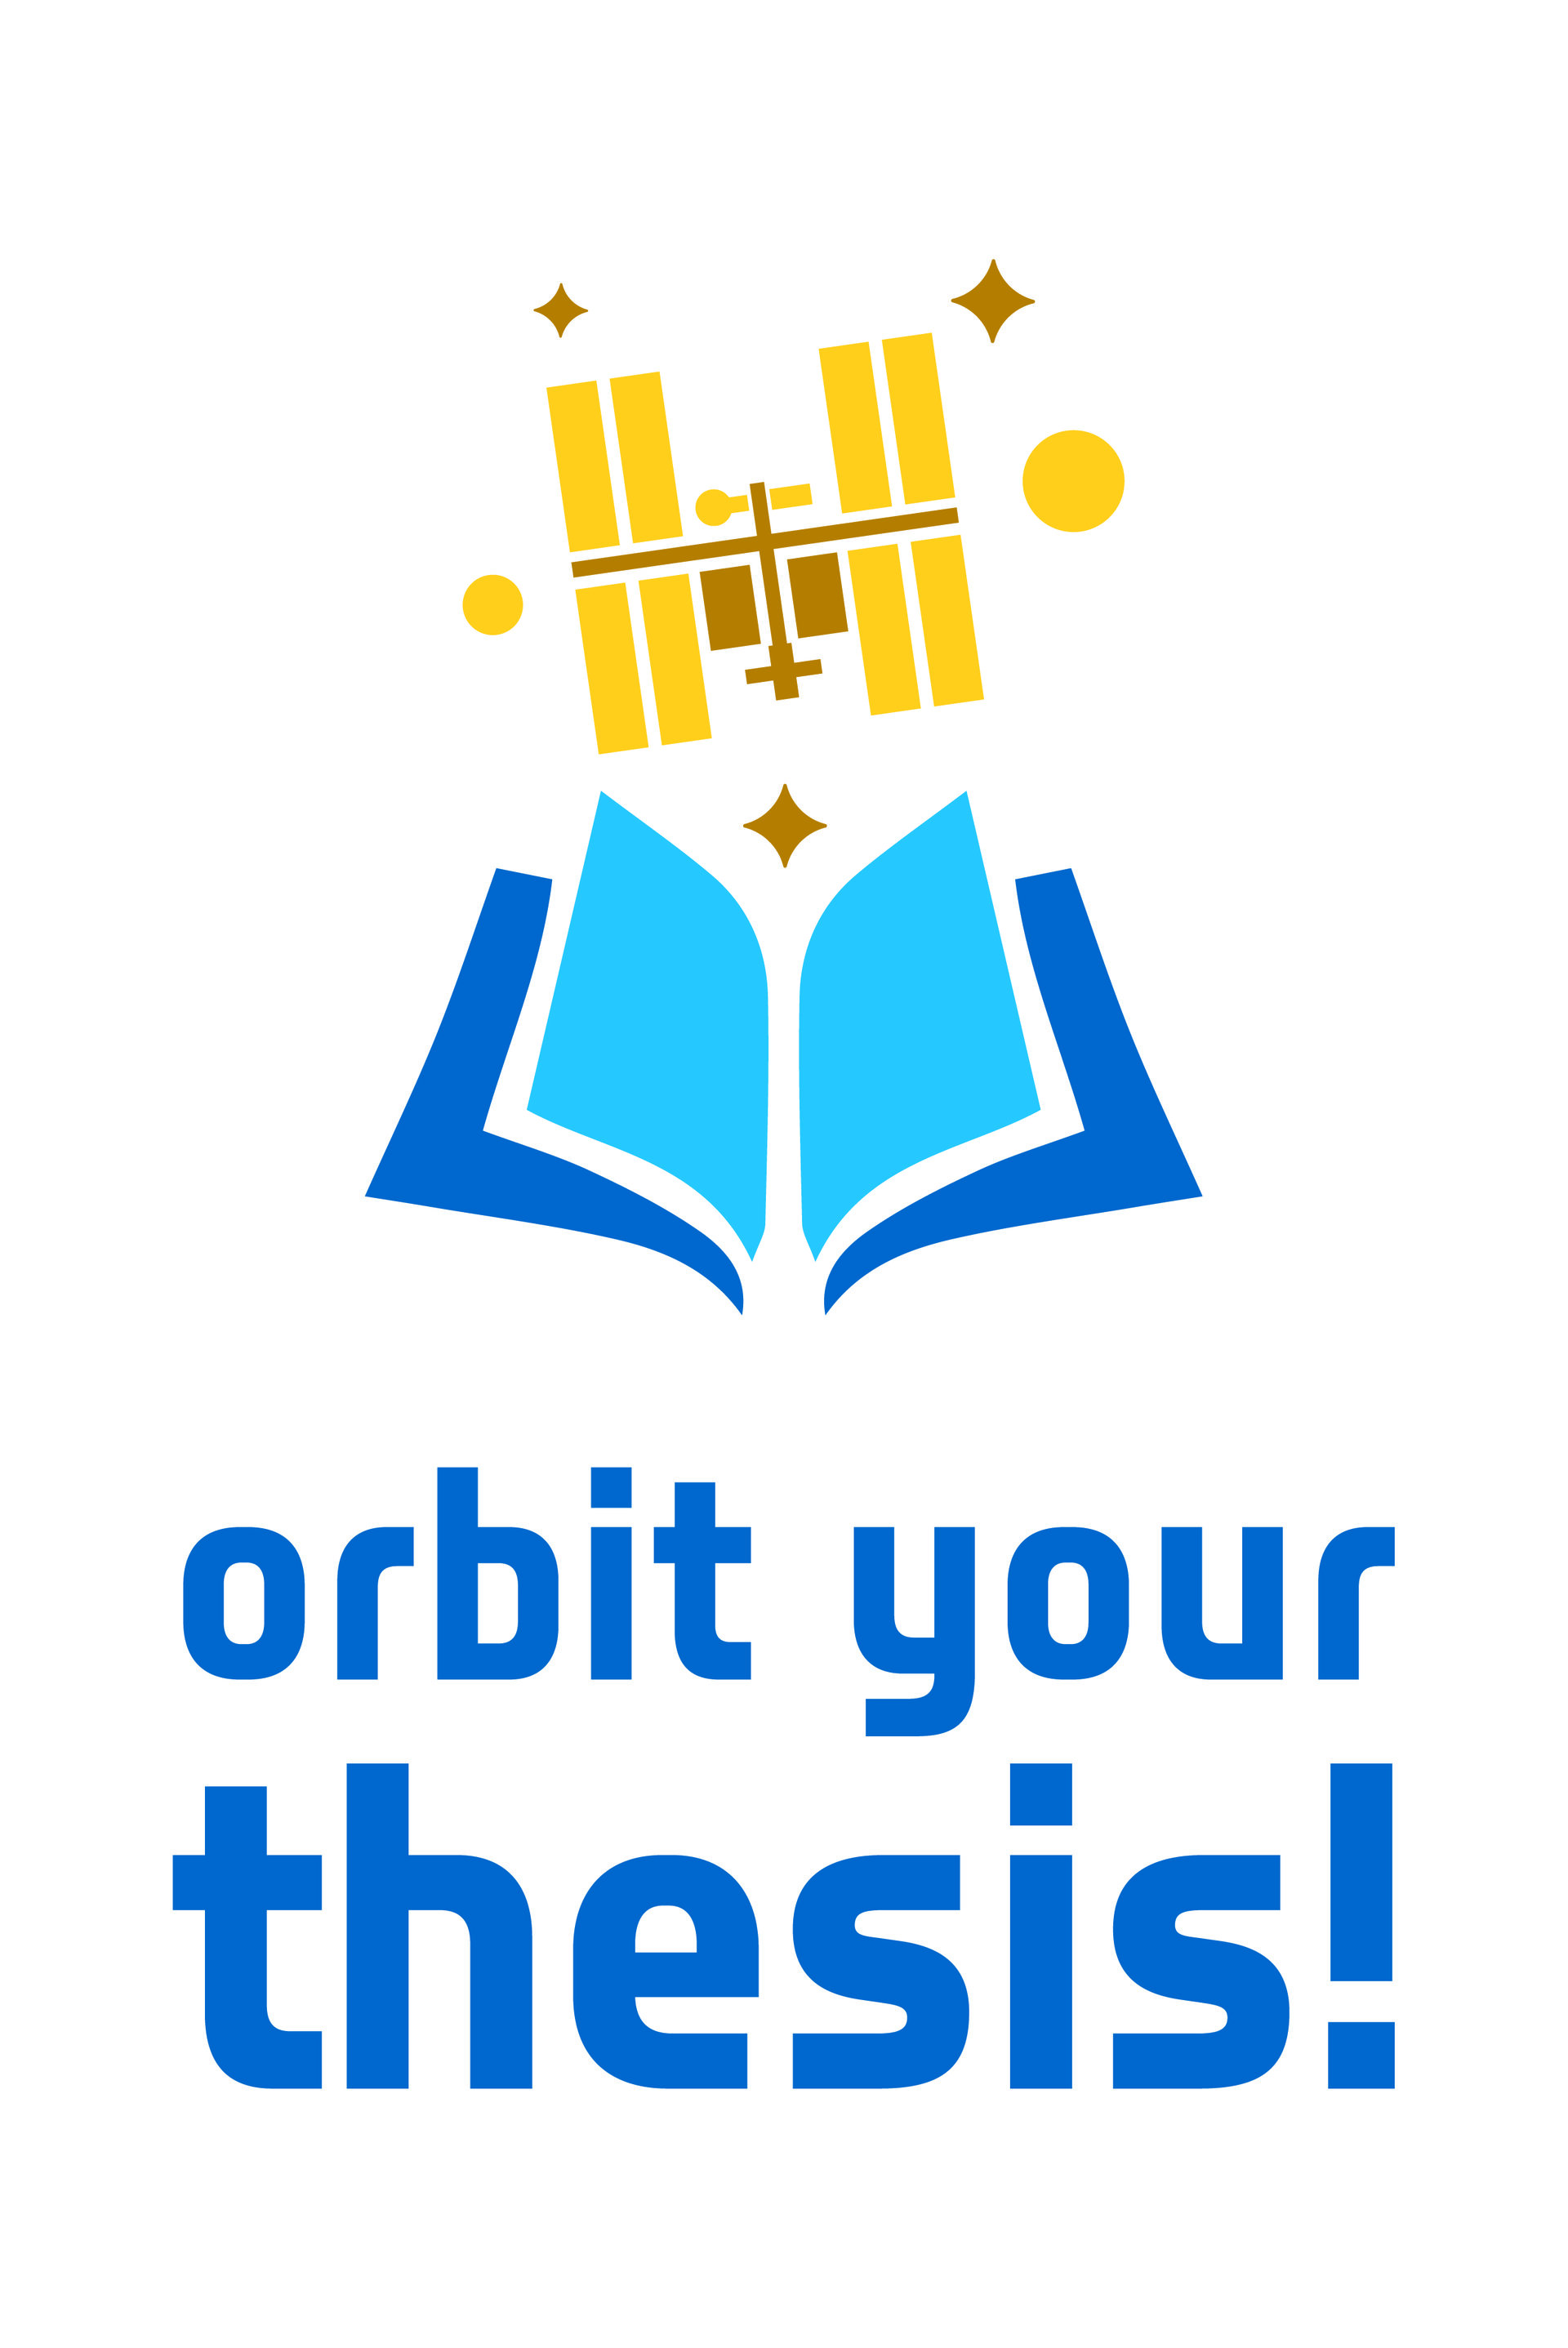 Orbit Your Thesis! logo